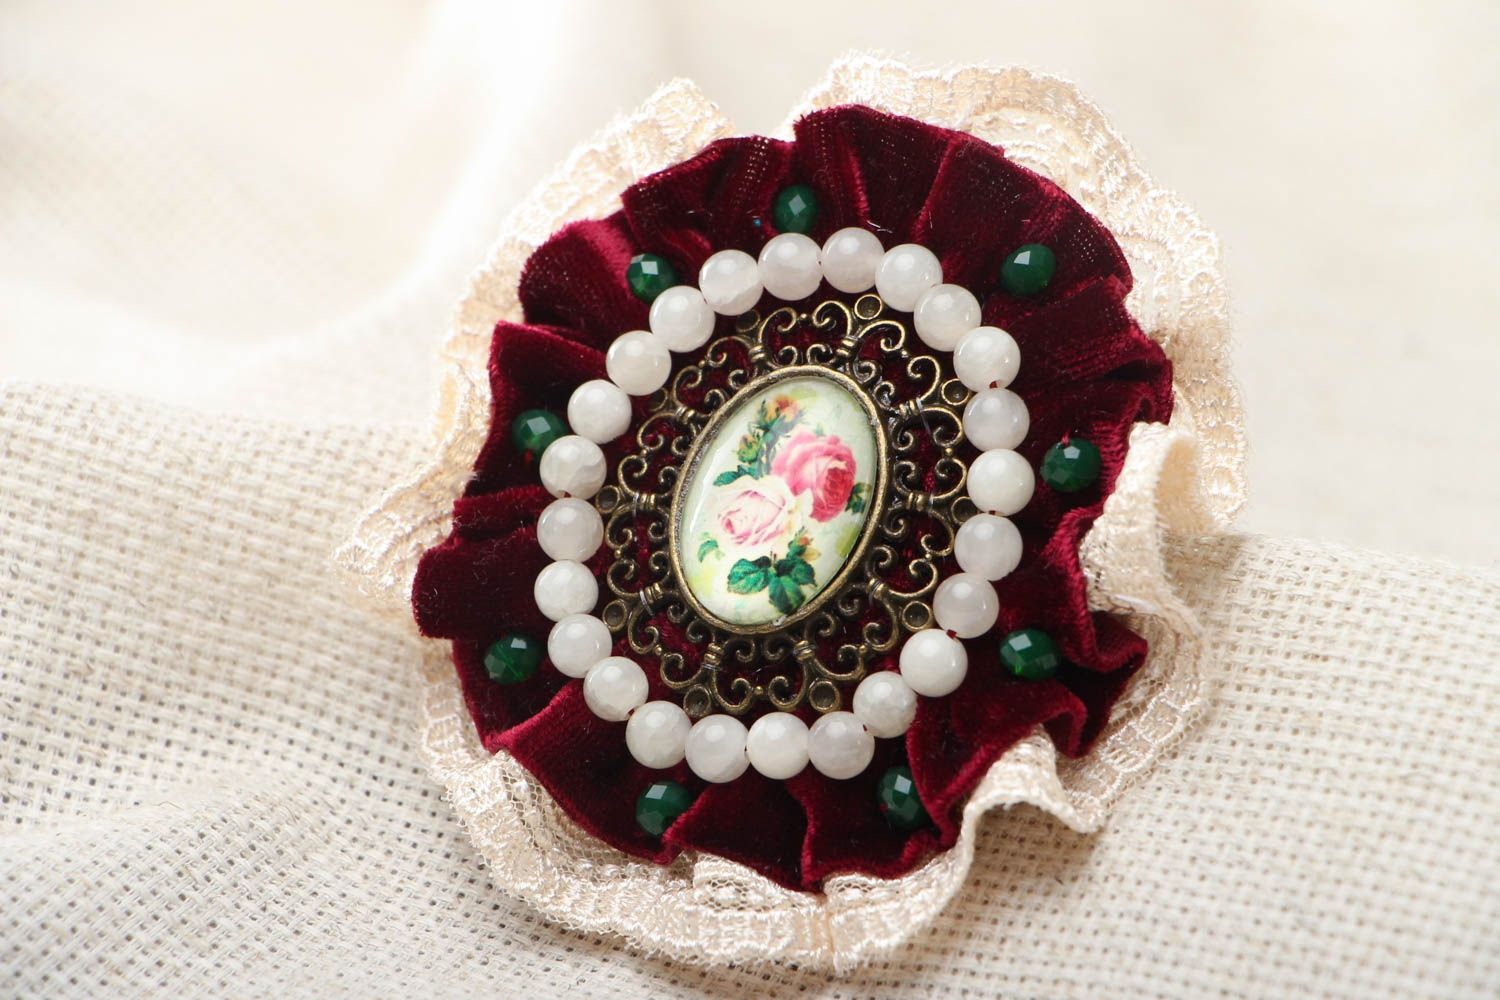 Homemade lace brooch photo 1